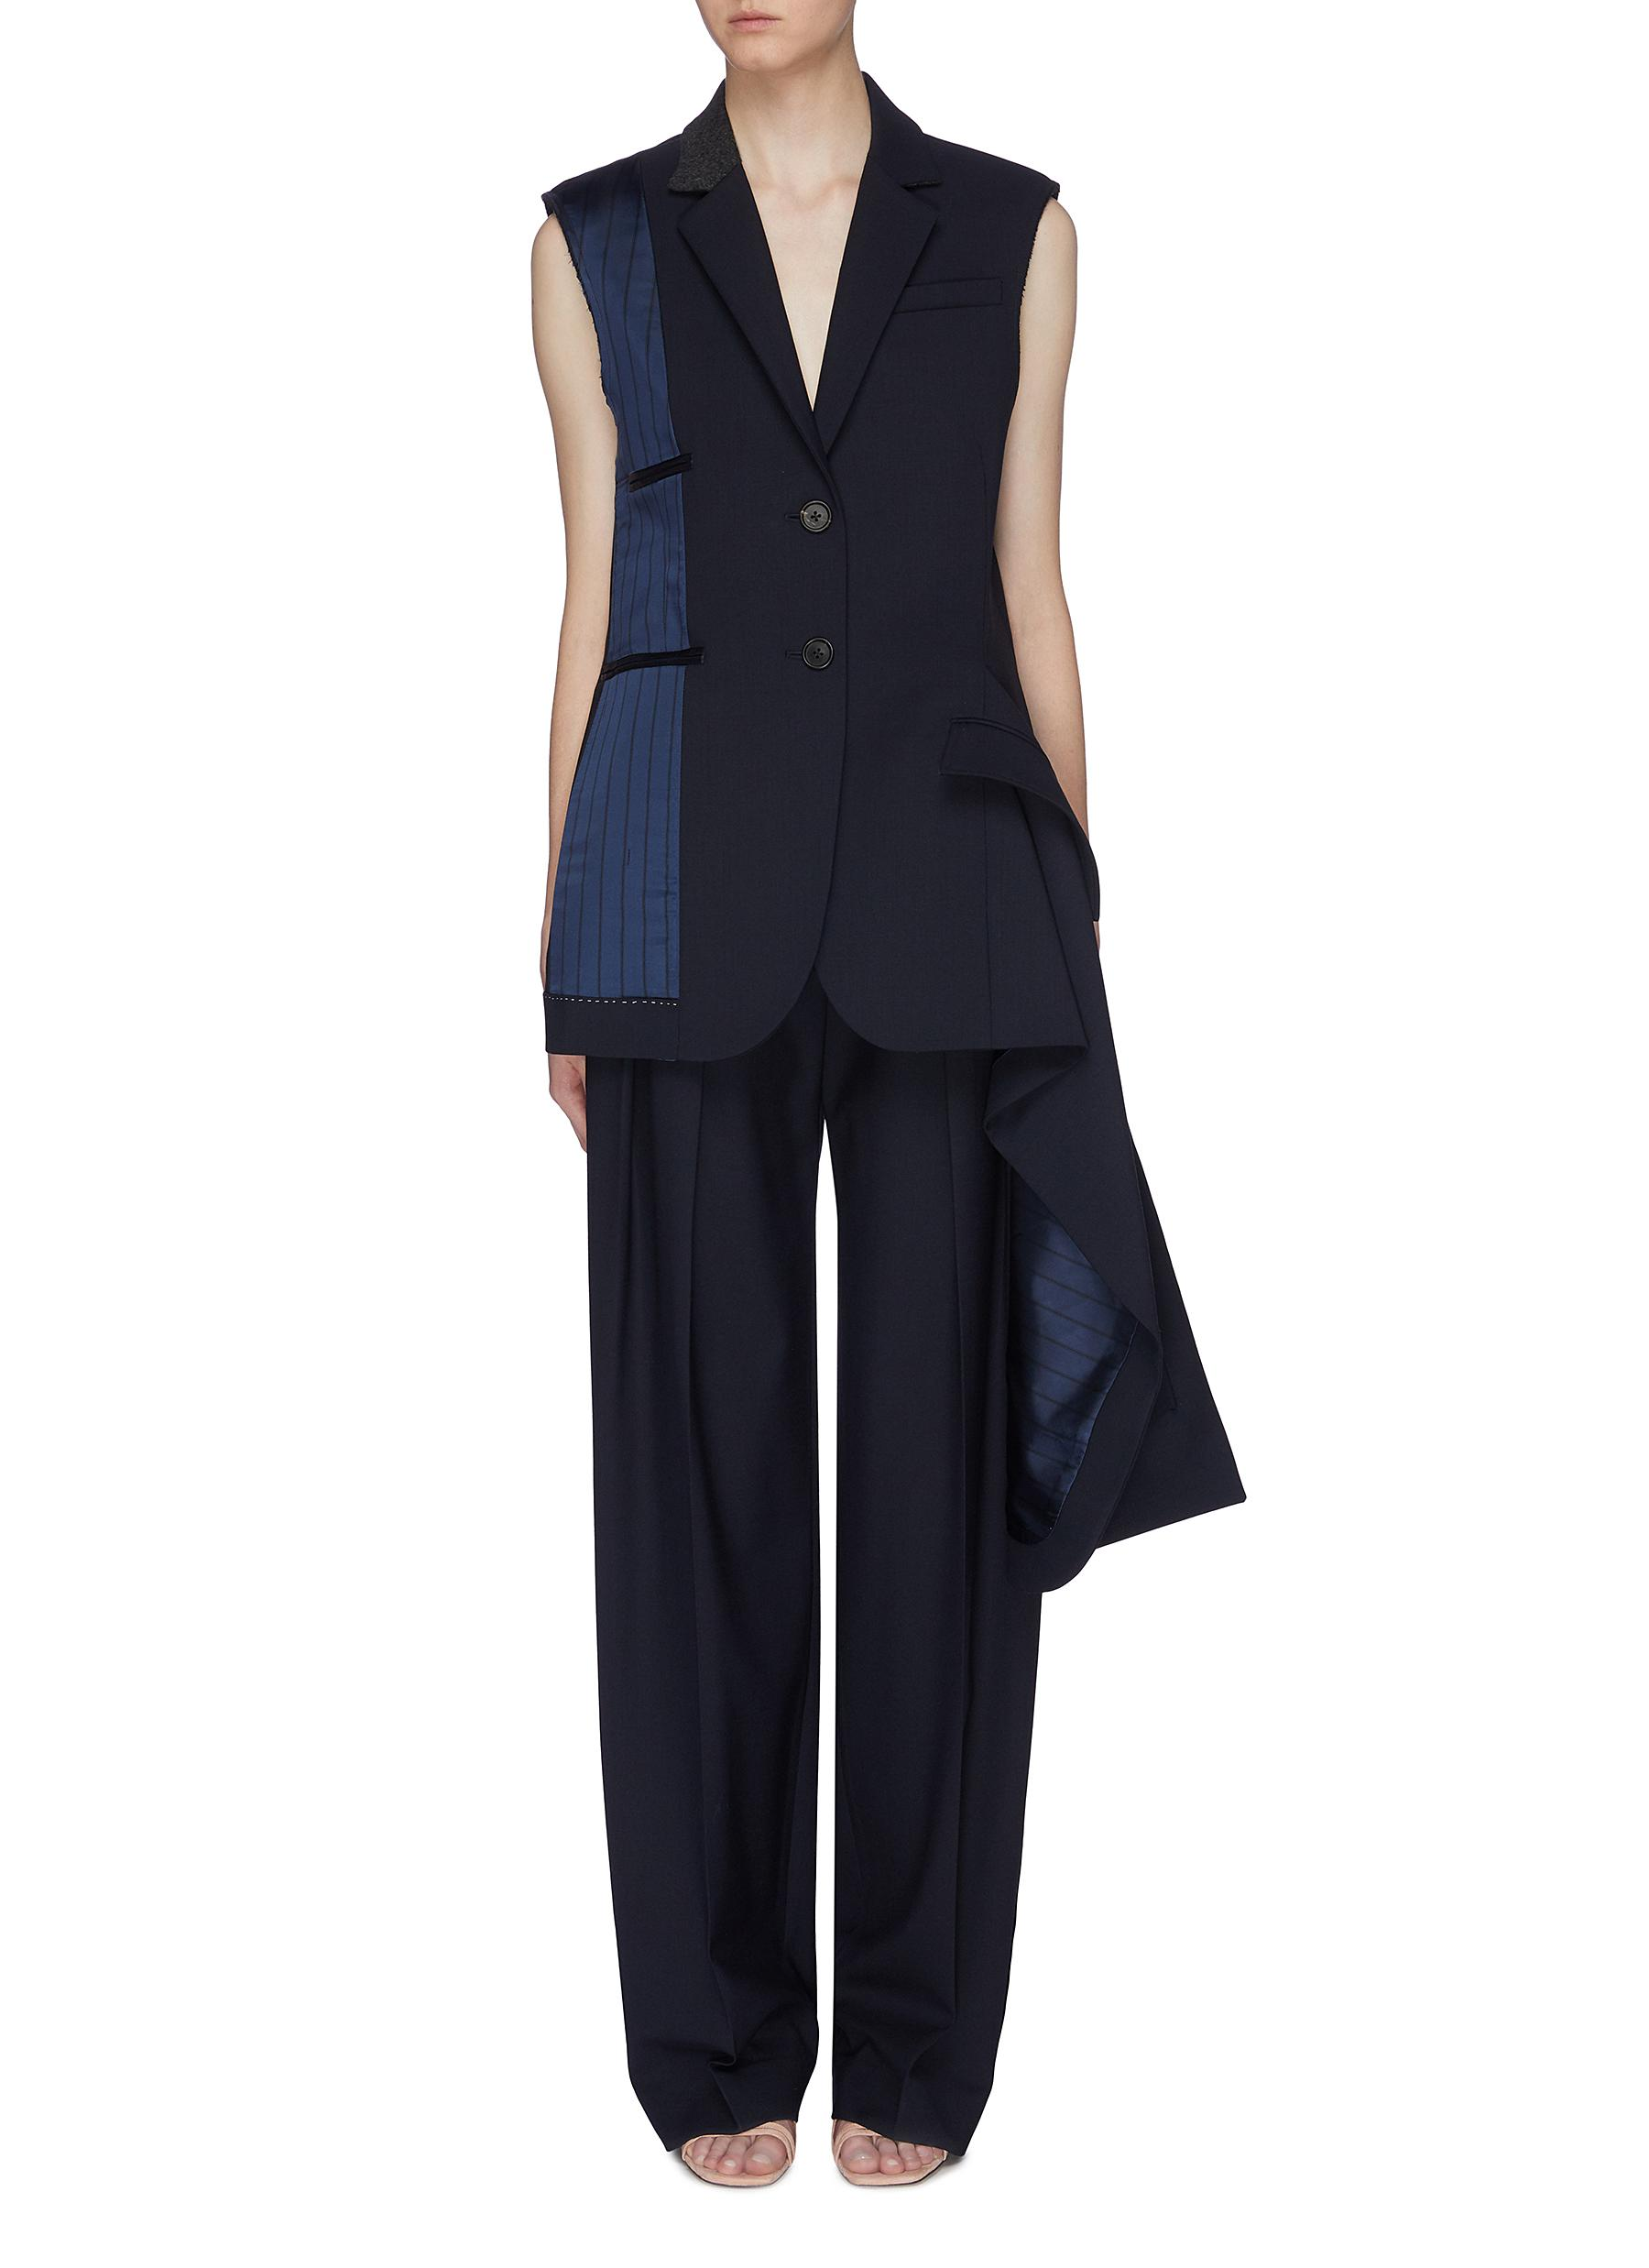 Lining panel asymmetric drape wool blazer vest by Monse